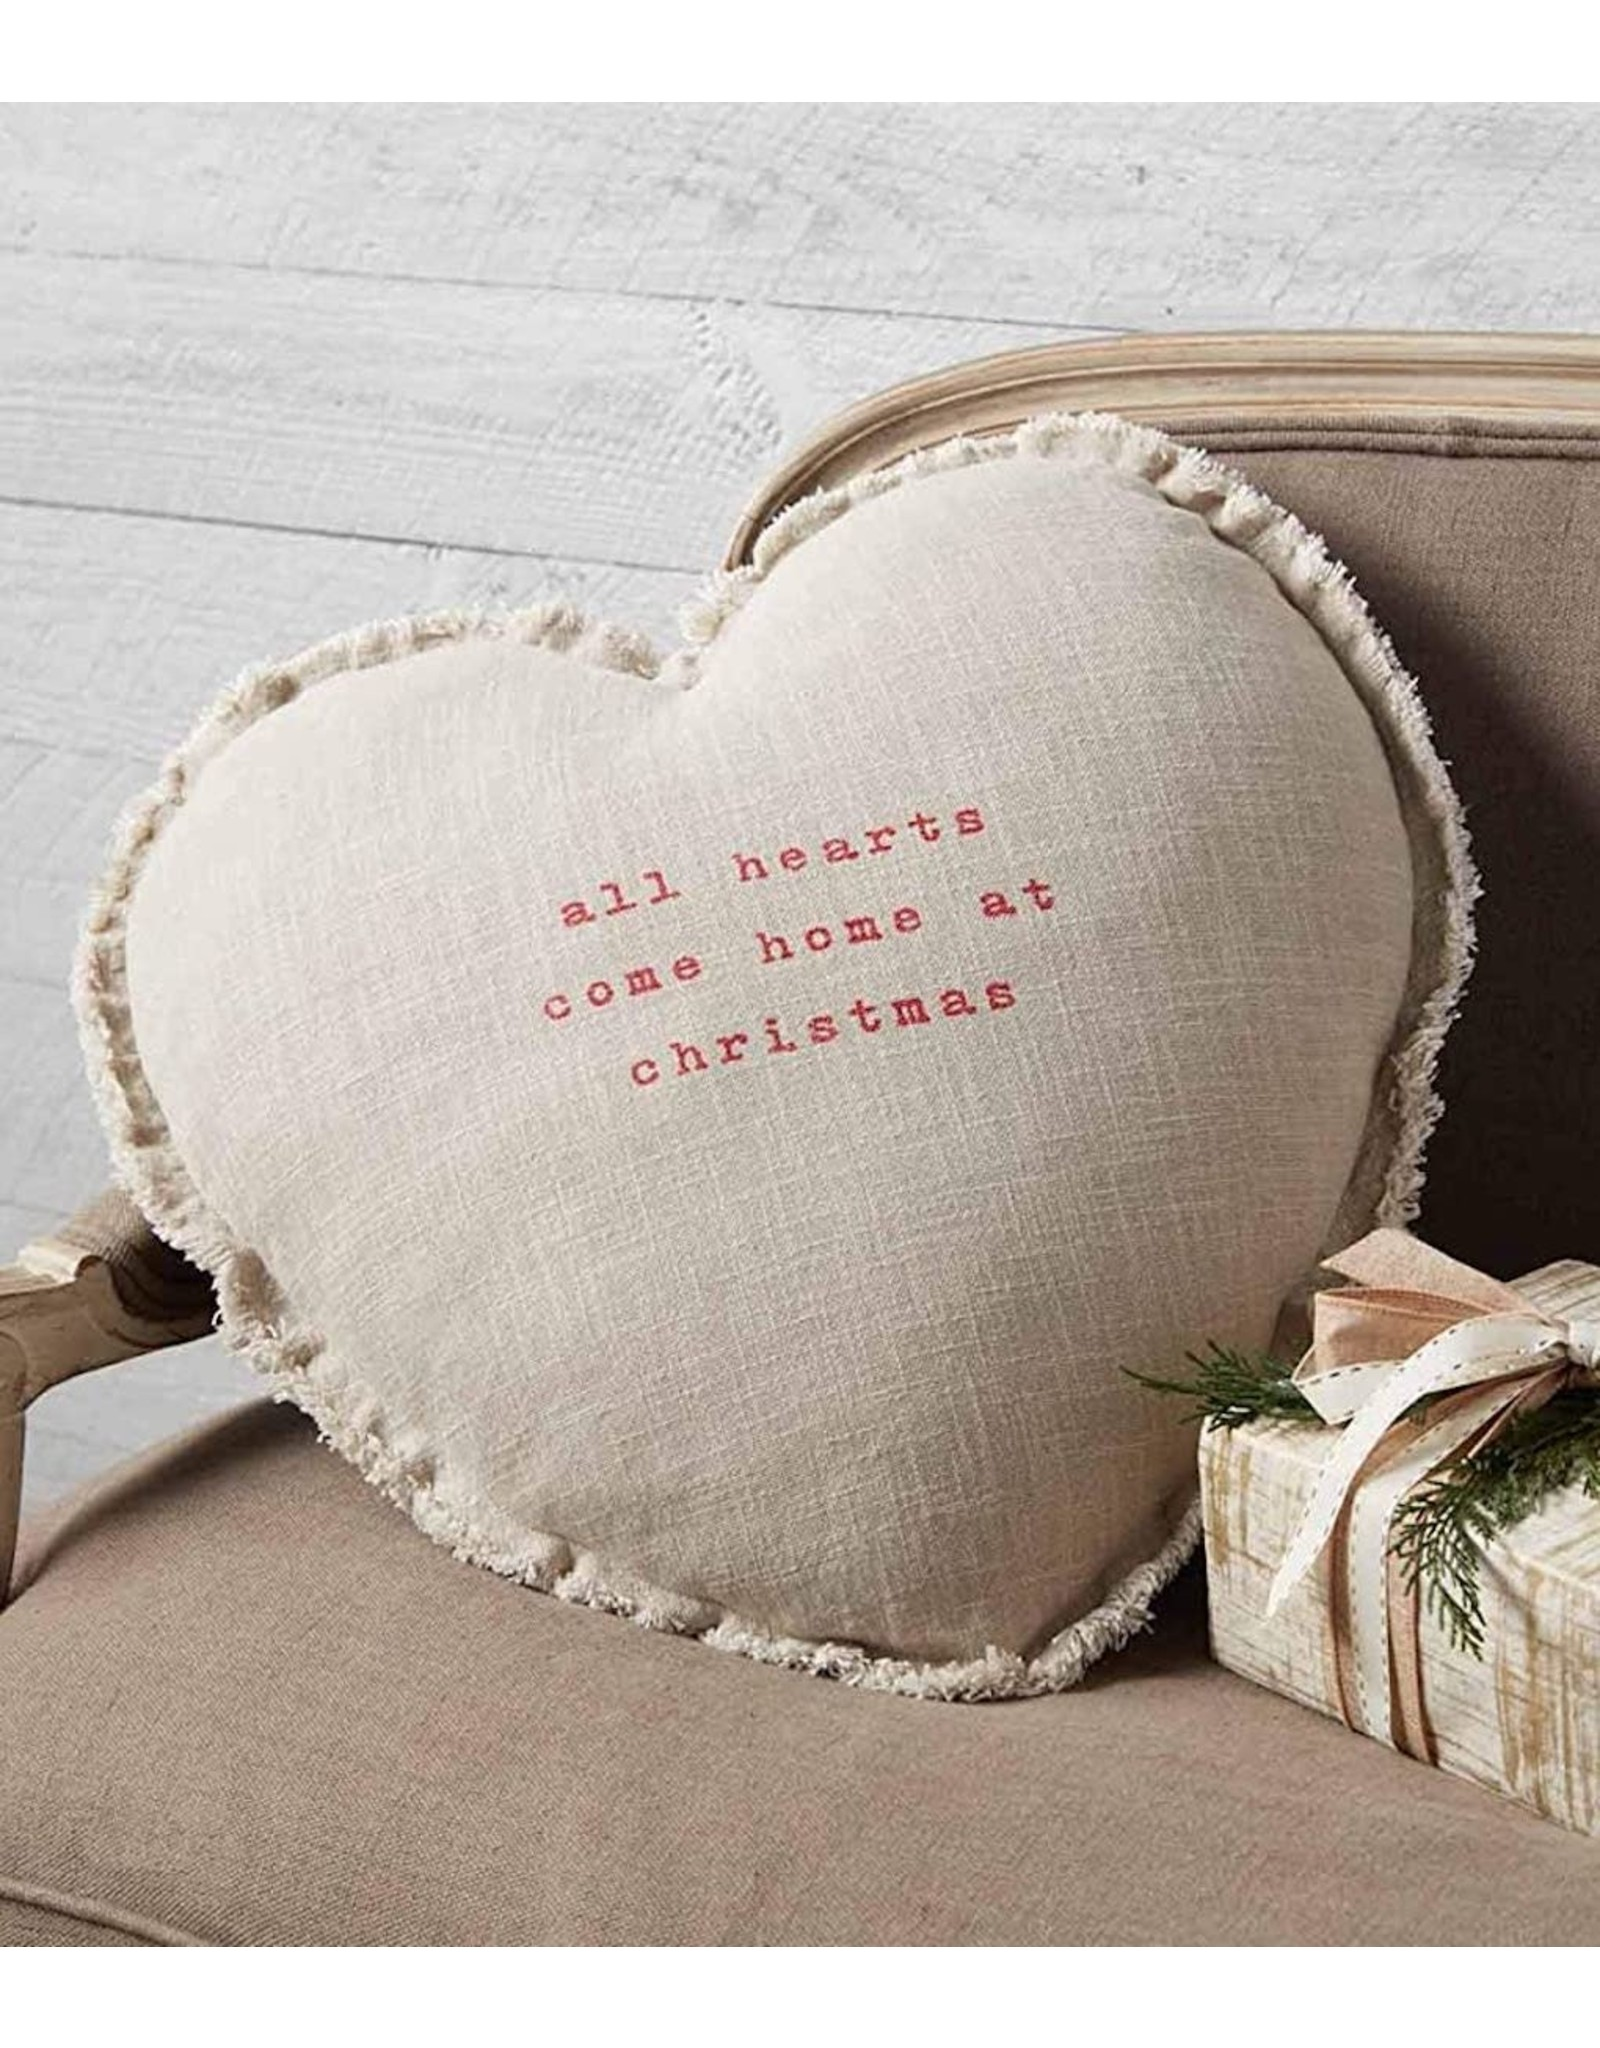 Mud Pie All Hearts Come Home at Christmas Pillow